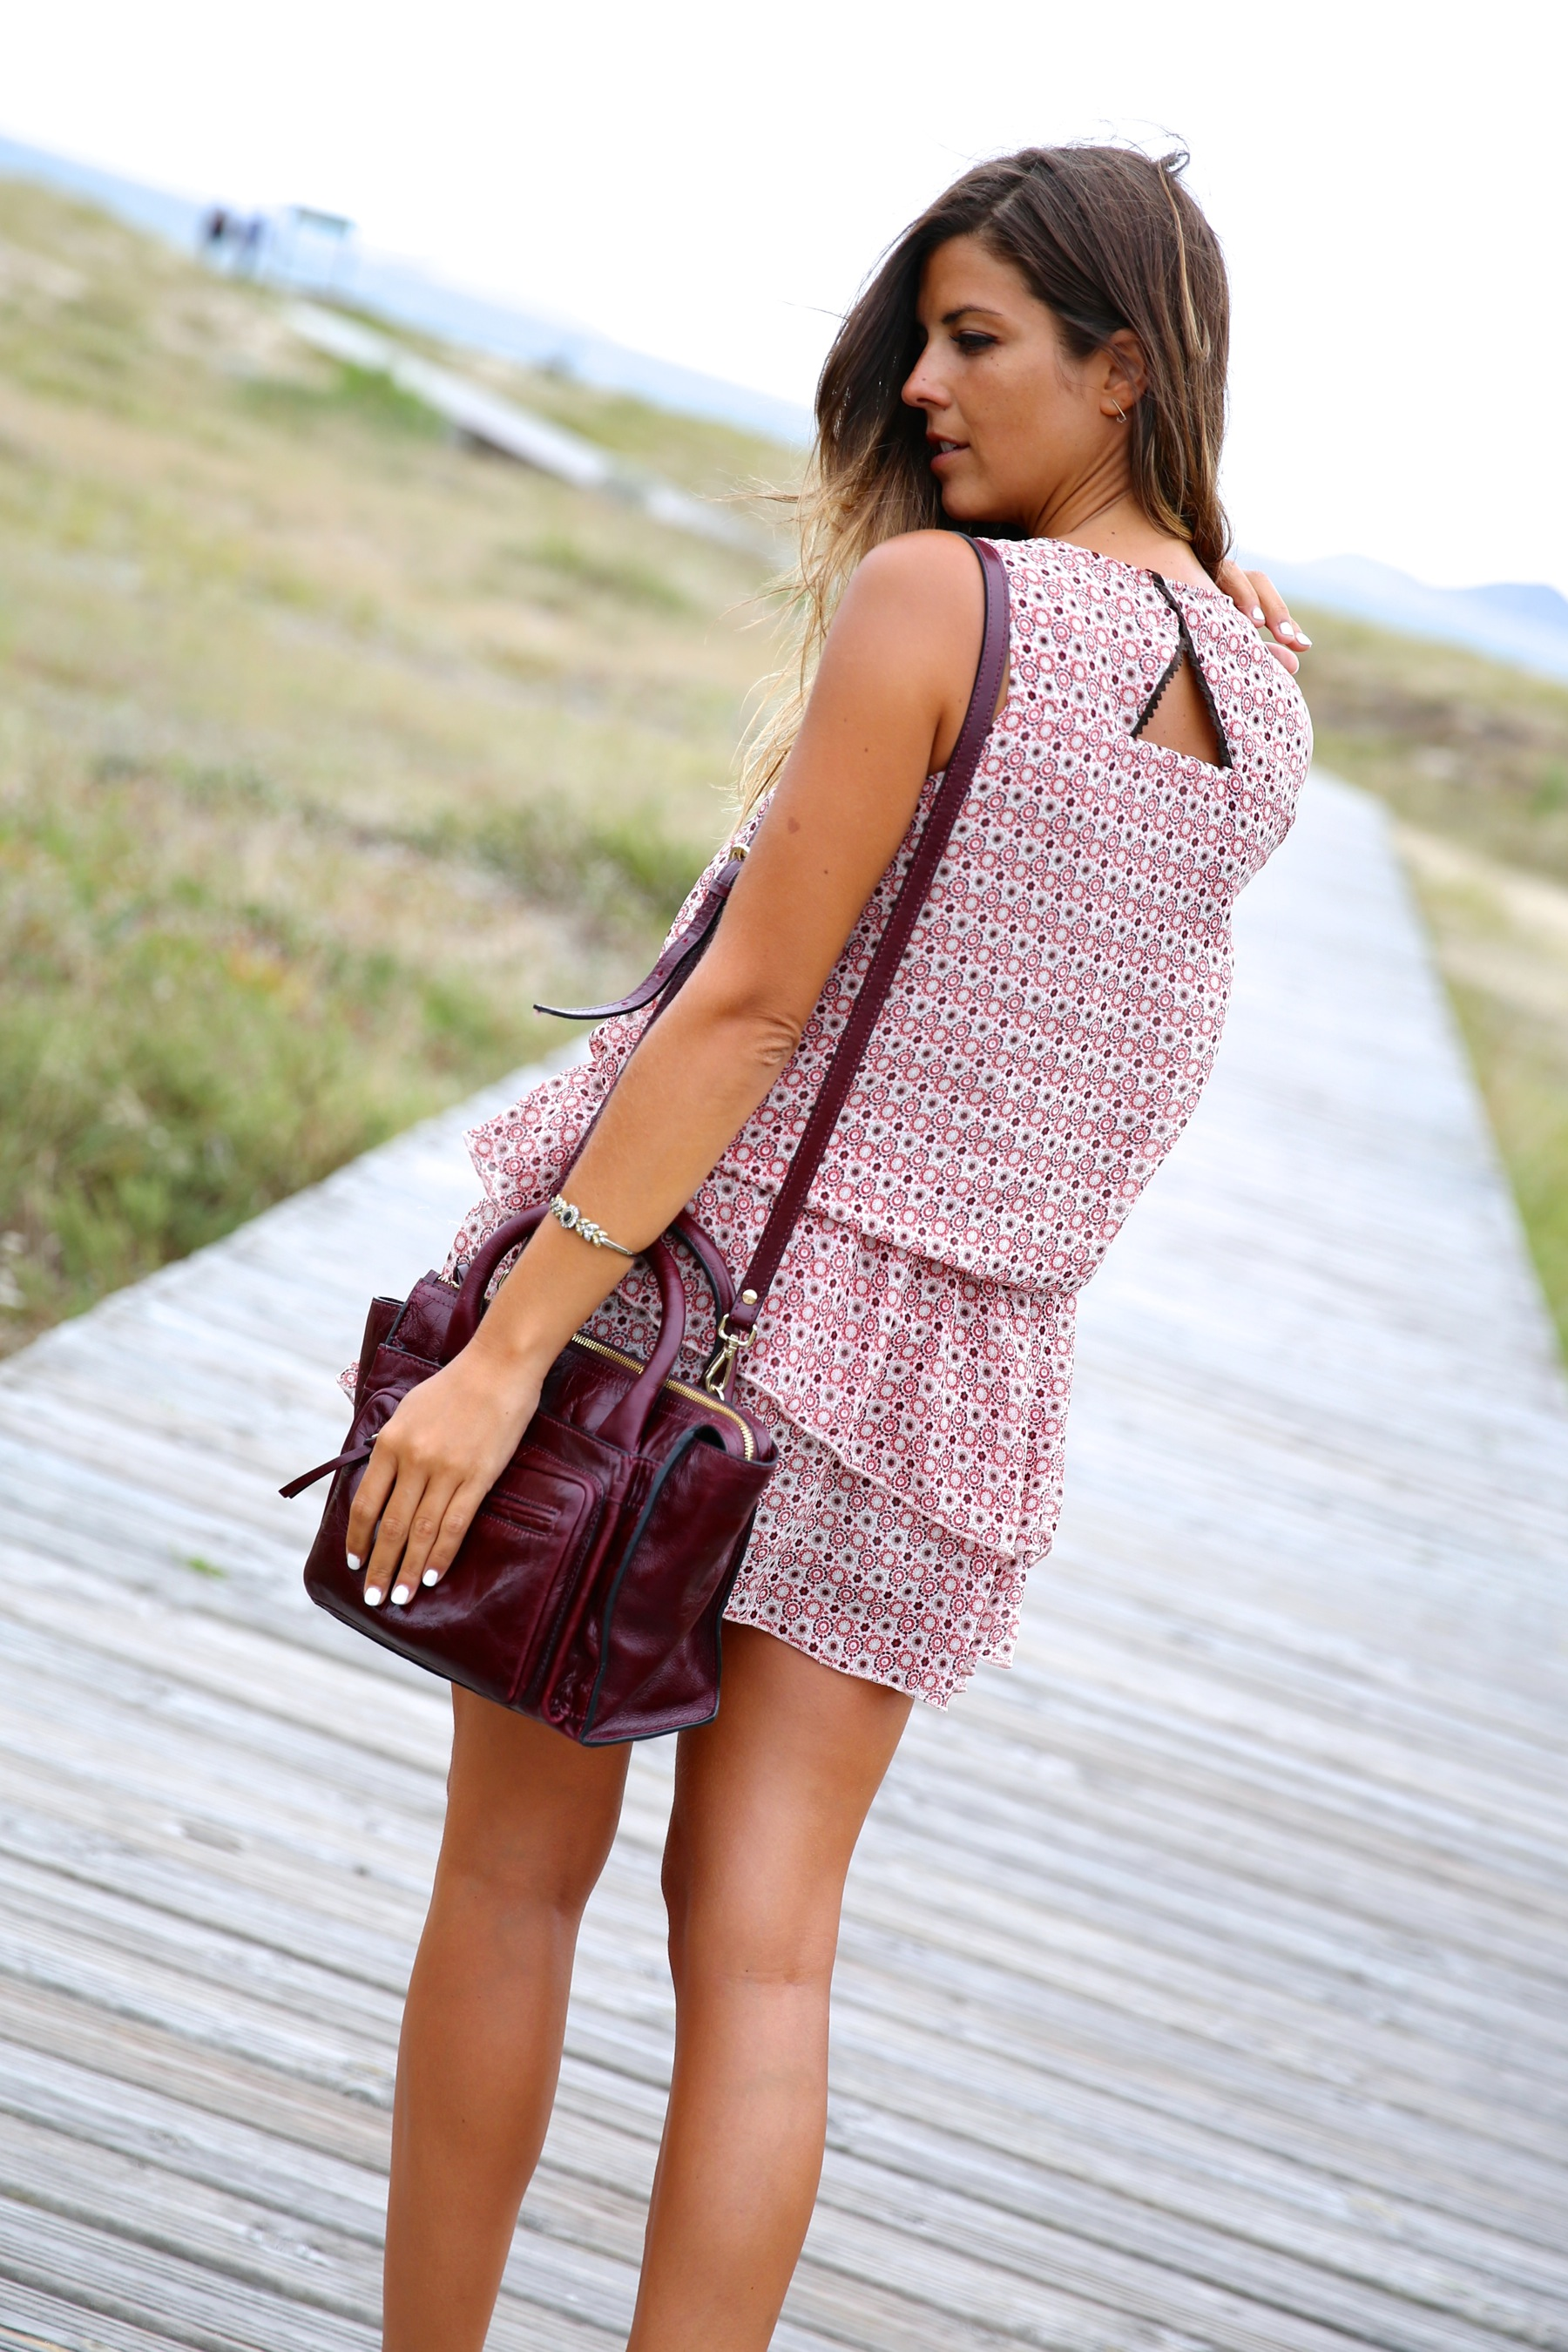 trendy_taste-look-outfit-street_style-ootd-blog-blogger-fashion_spain-moda_españa-boho-beach-playa-galicia-vestido-dress-sandalias-sandals-6